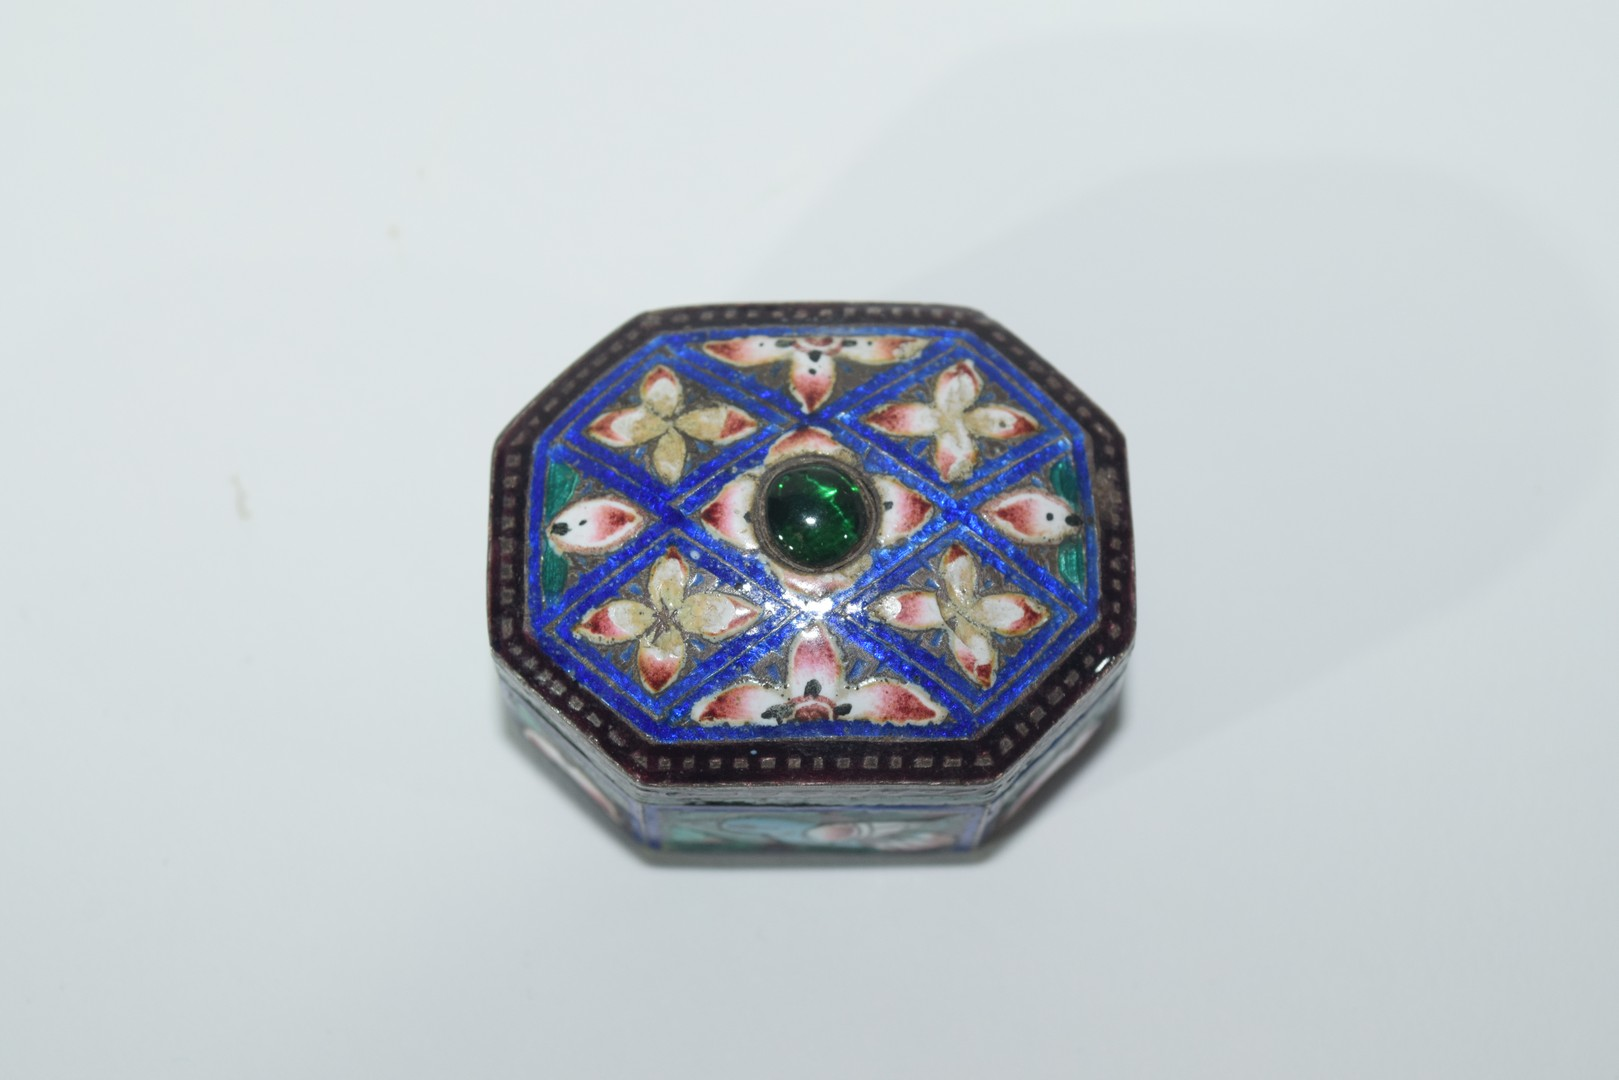 Two enamel Indian elephants with howdahs and a pill box - Image 3 of 9